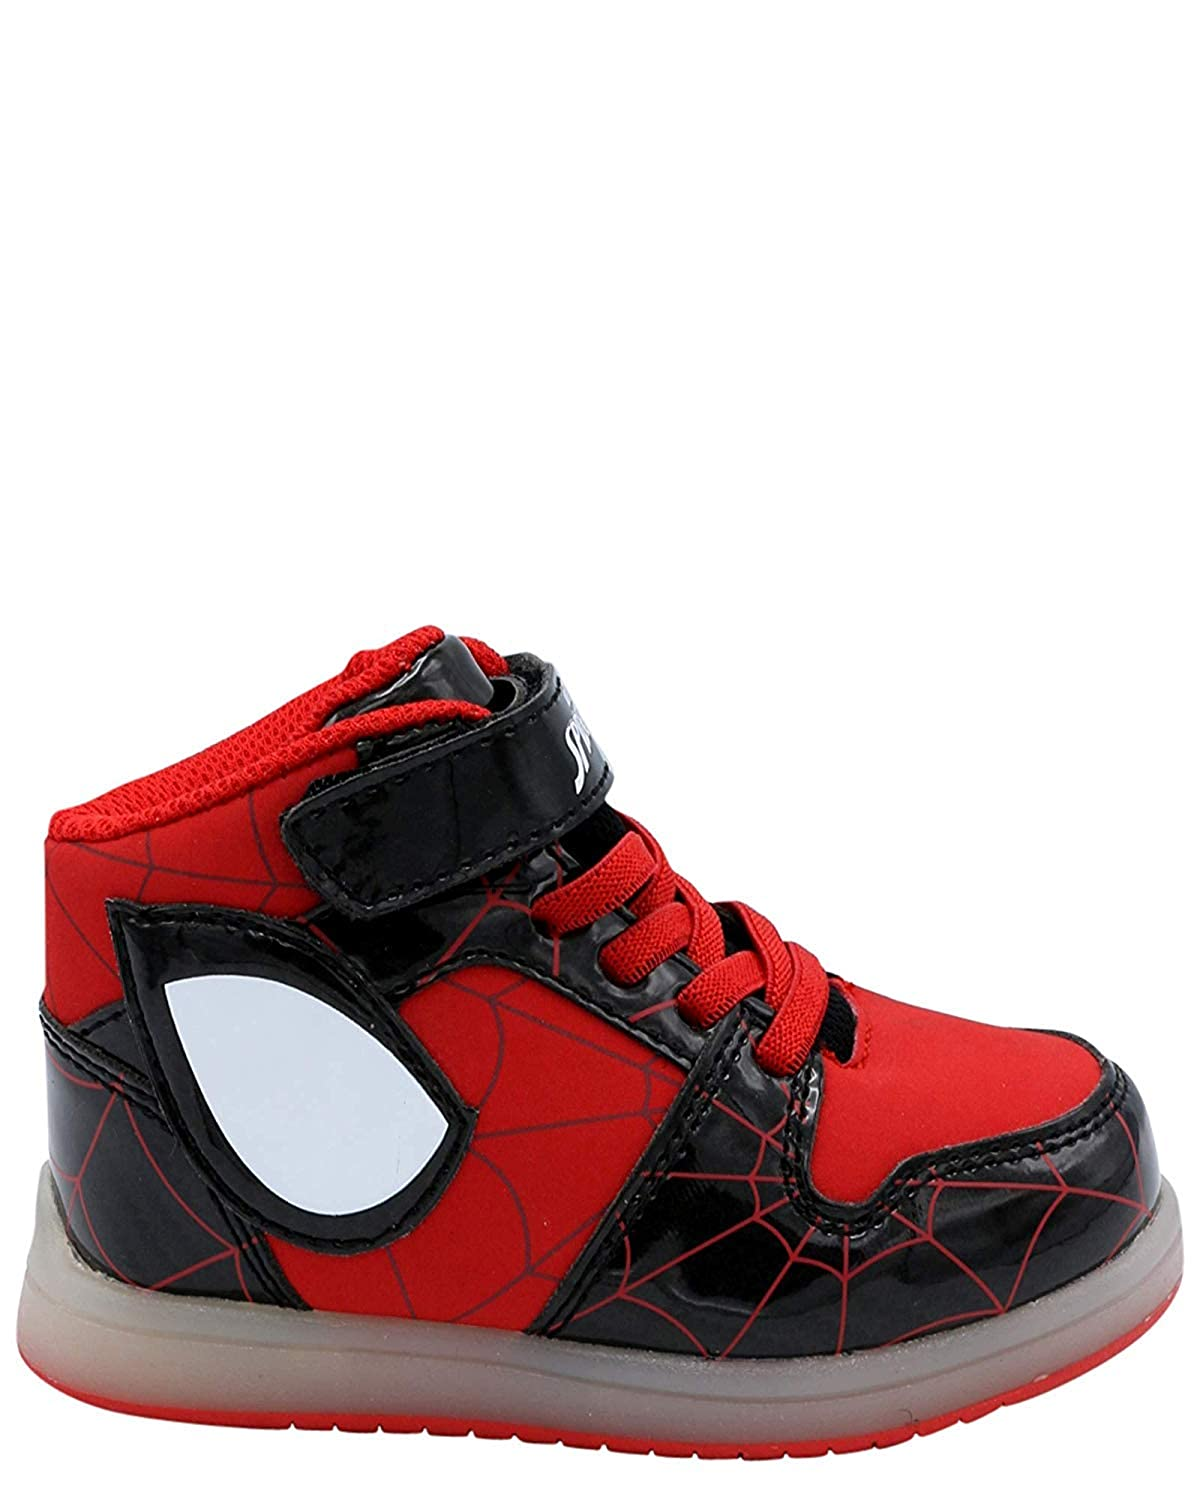 4f52a6219ff3a Favorite Characters Spiderman Kids Boy's Spiderman Lighted Sneaker (Toddler)